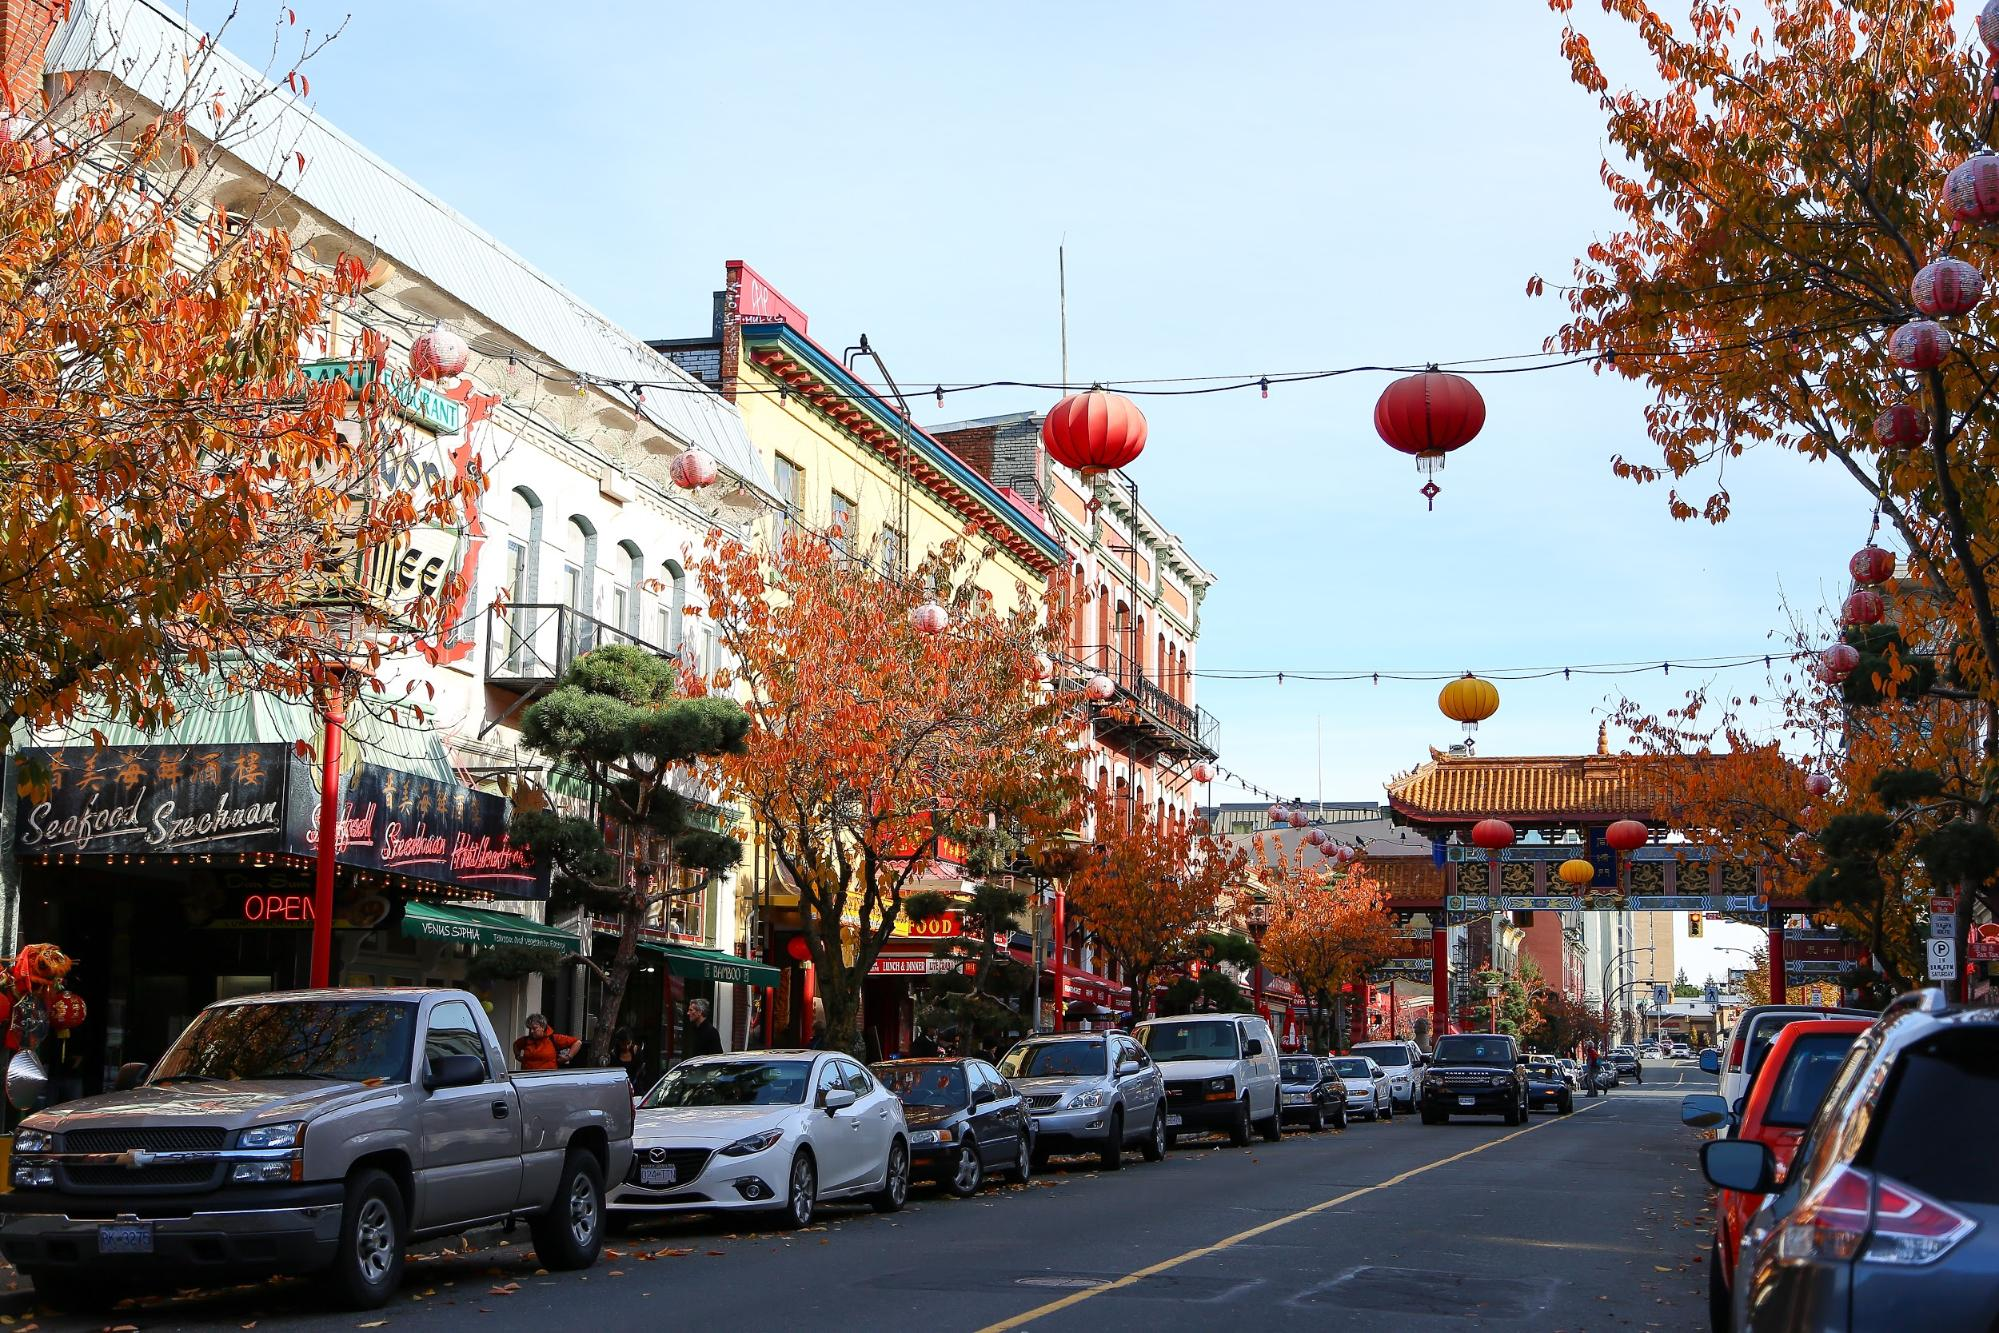 Colourful Chinese lantern strung across a city street.